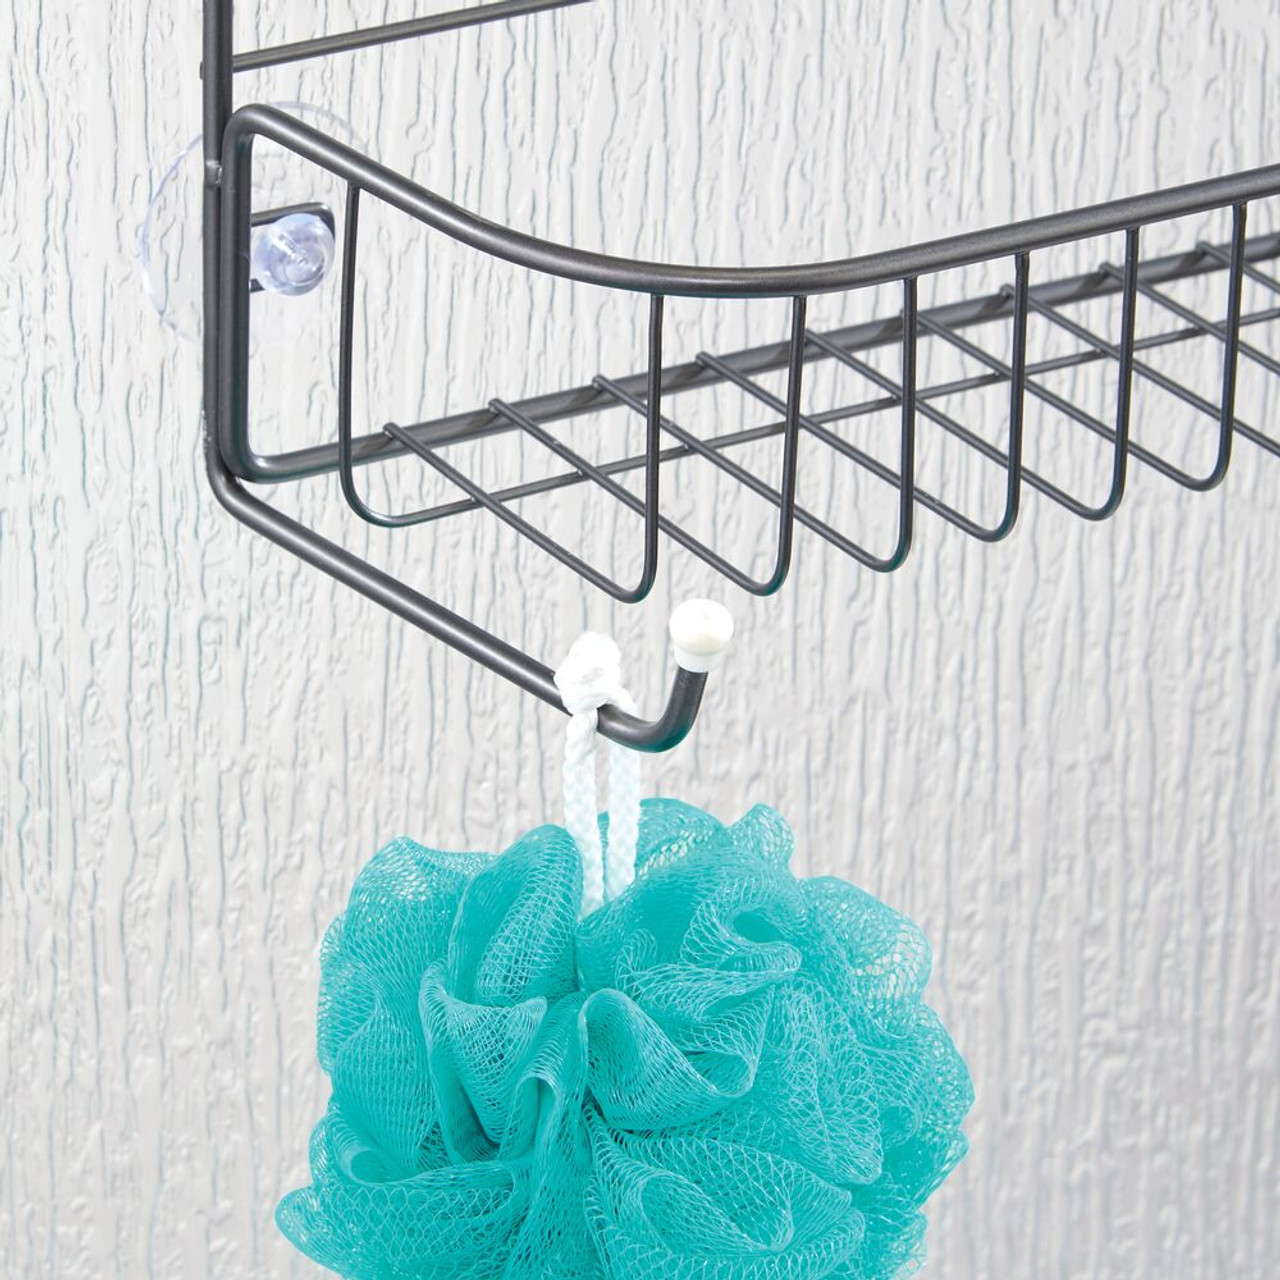 Loofahs Body Wash Hanging Storage Organizer Center with Built-in Hooks and Baskets on 2 Levels for Shampoo Graphite Gray Rust Resistant mDesign Extra Wide Metal Wire Tub /& Shower Caddy